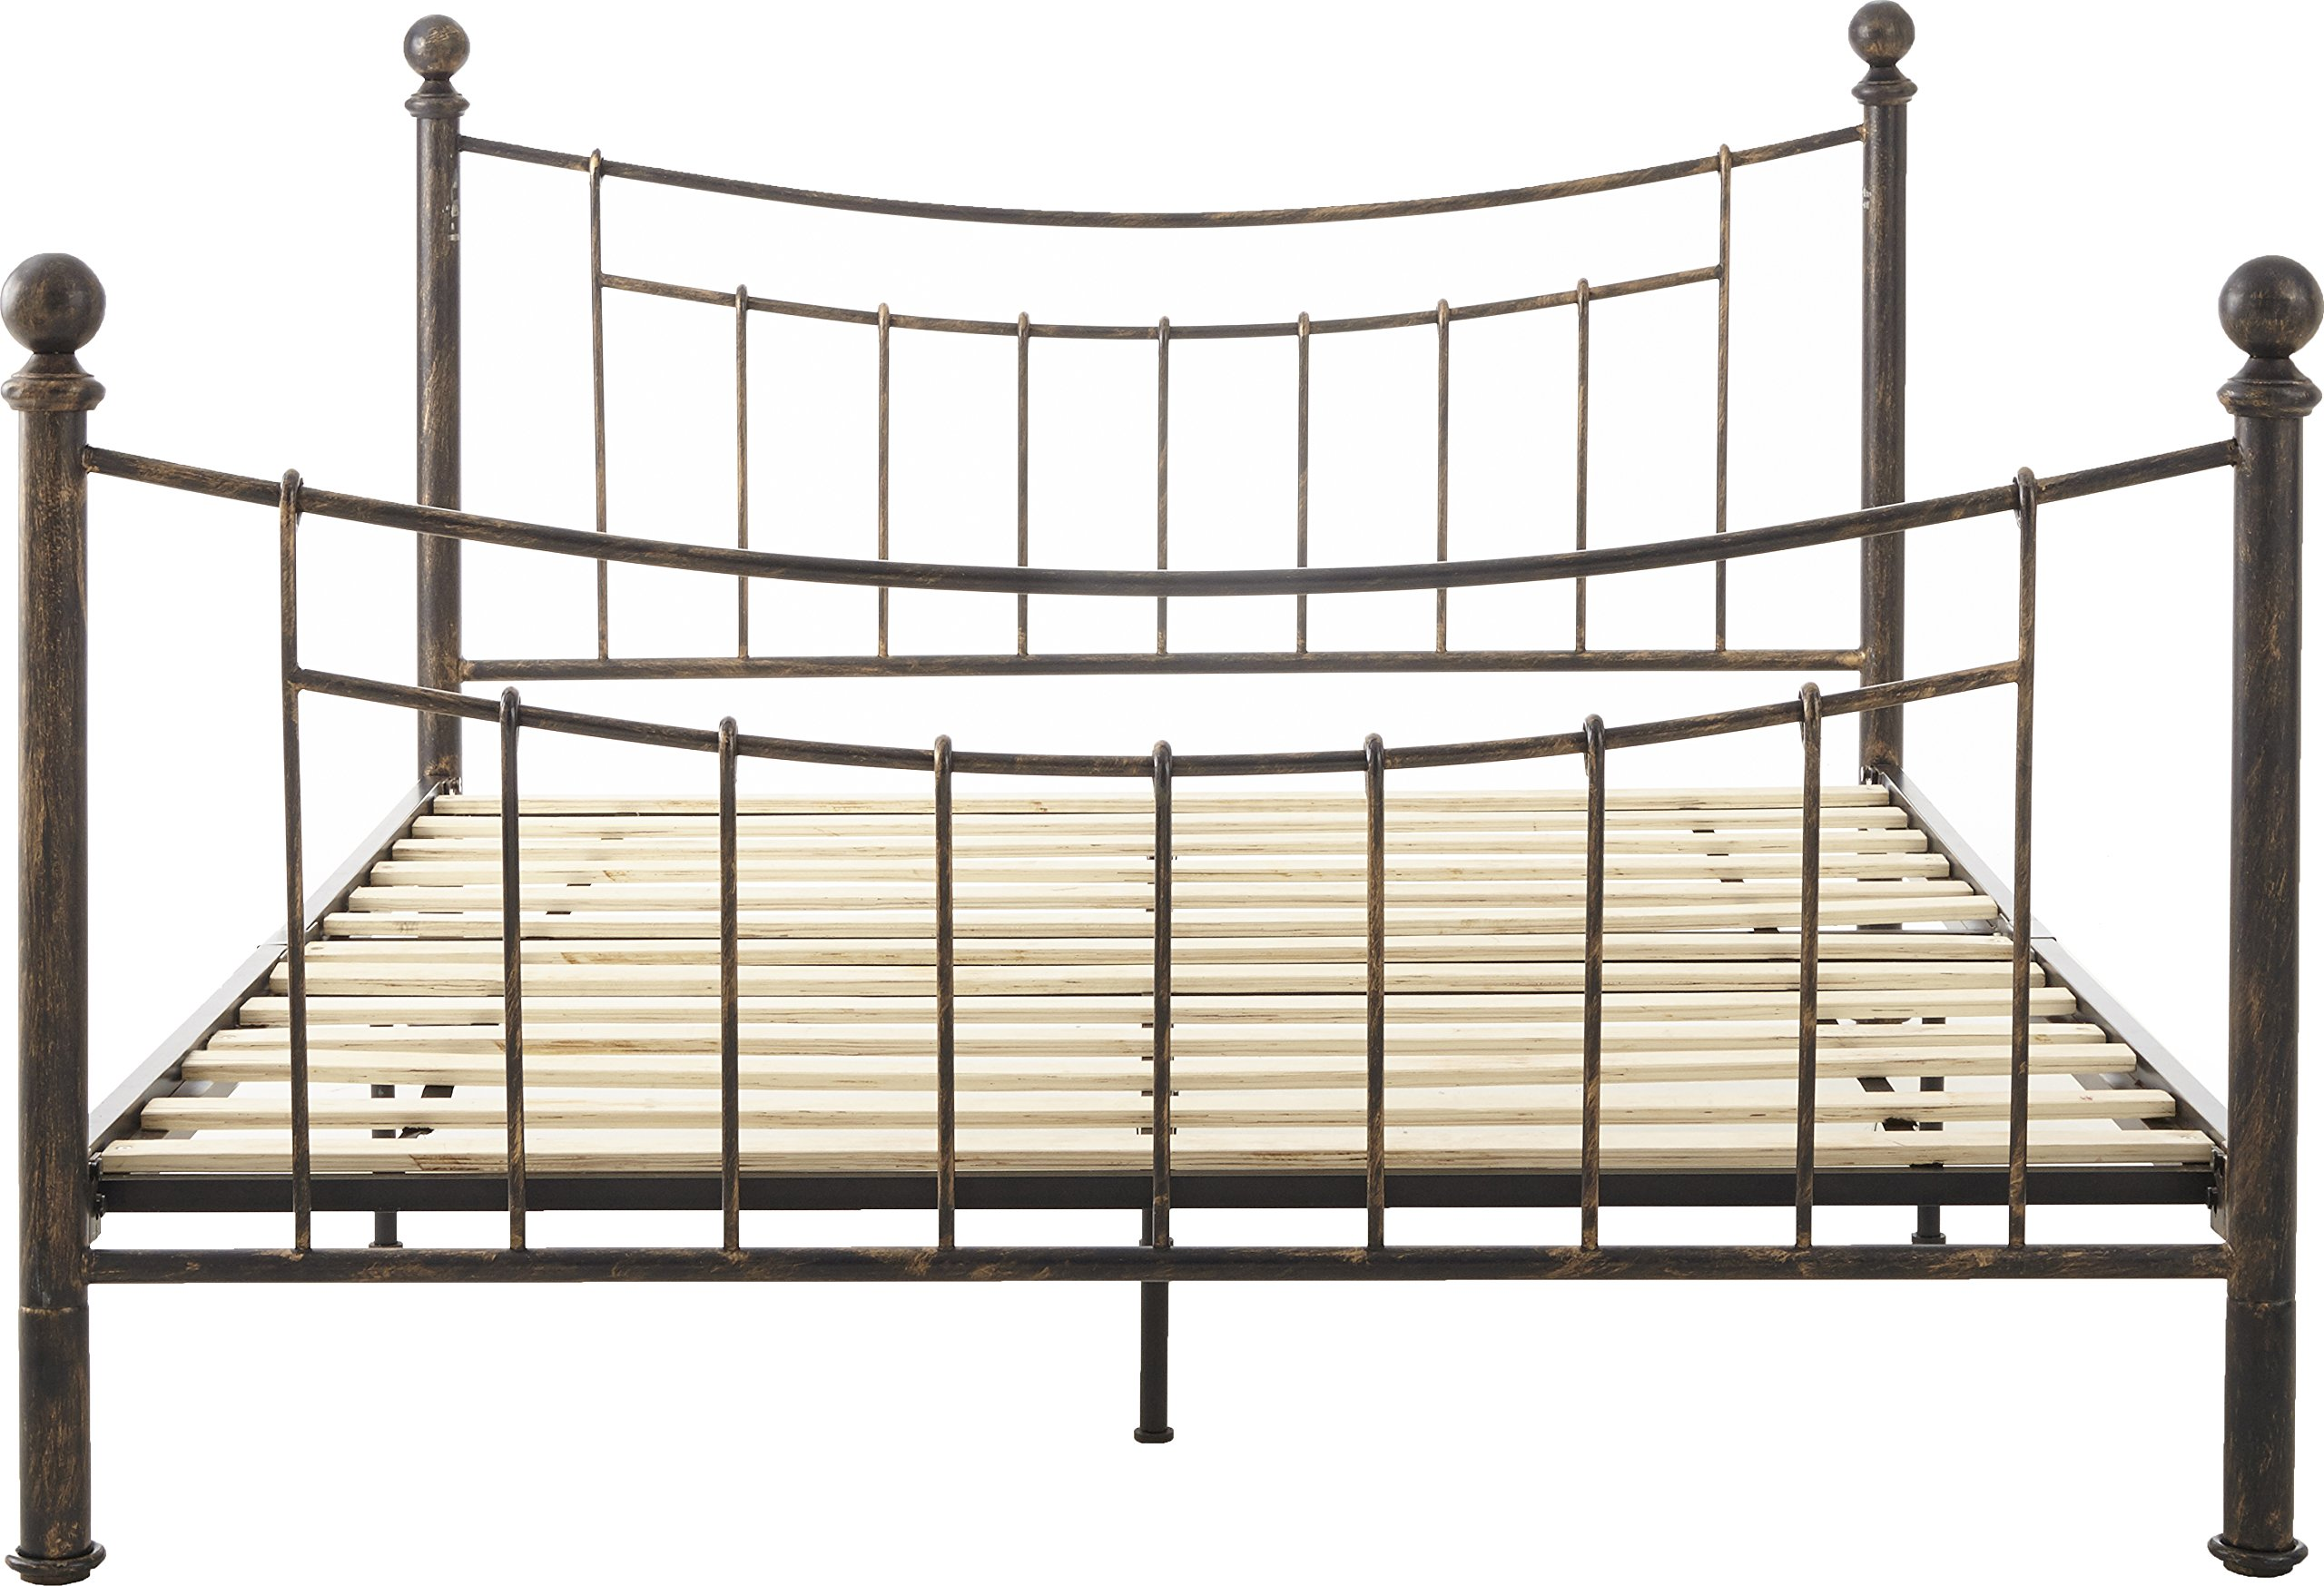 Flex Form Rowan Metal Platform Bed Frame / Mattress Foundation with Headboard and Footboard, Queen by Flex Form (Image #7)